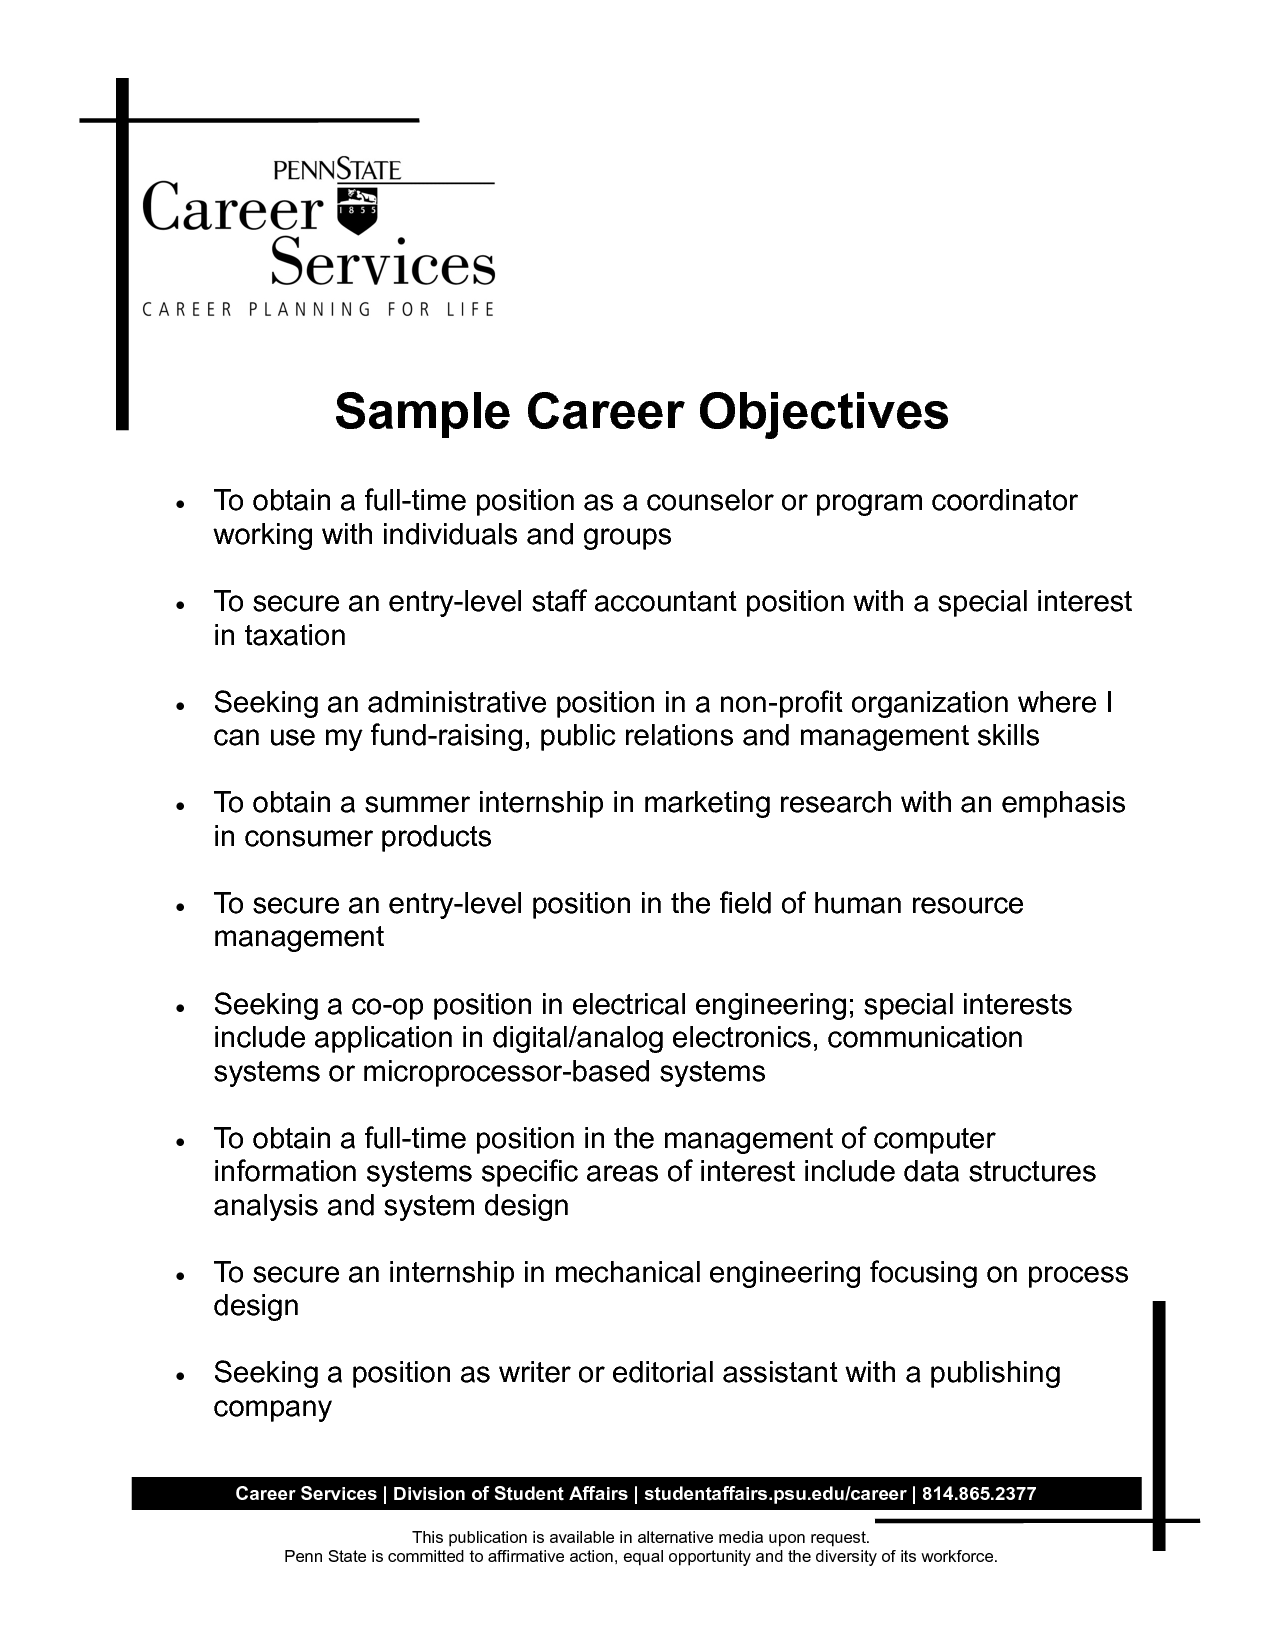 How to write career objective with sample for Sample objectives in resume for office staff